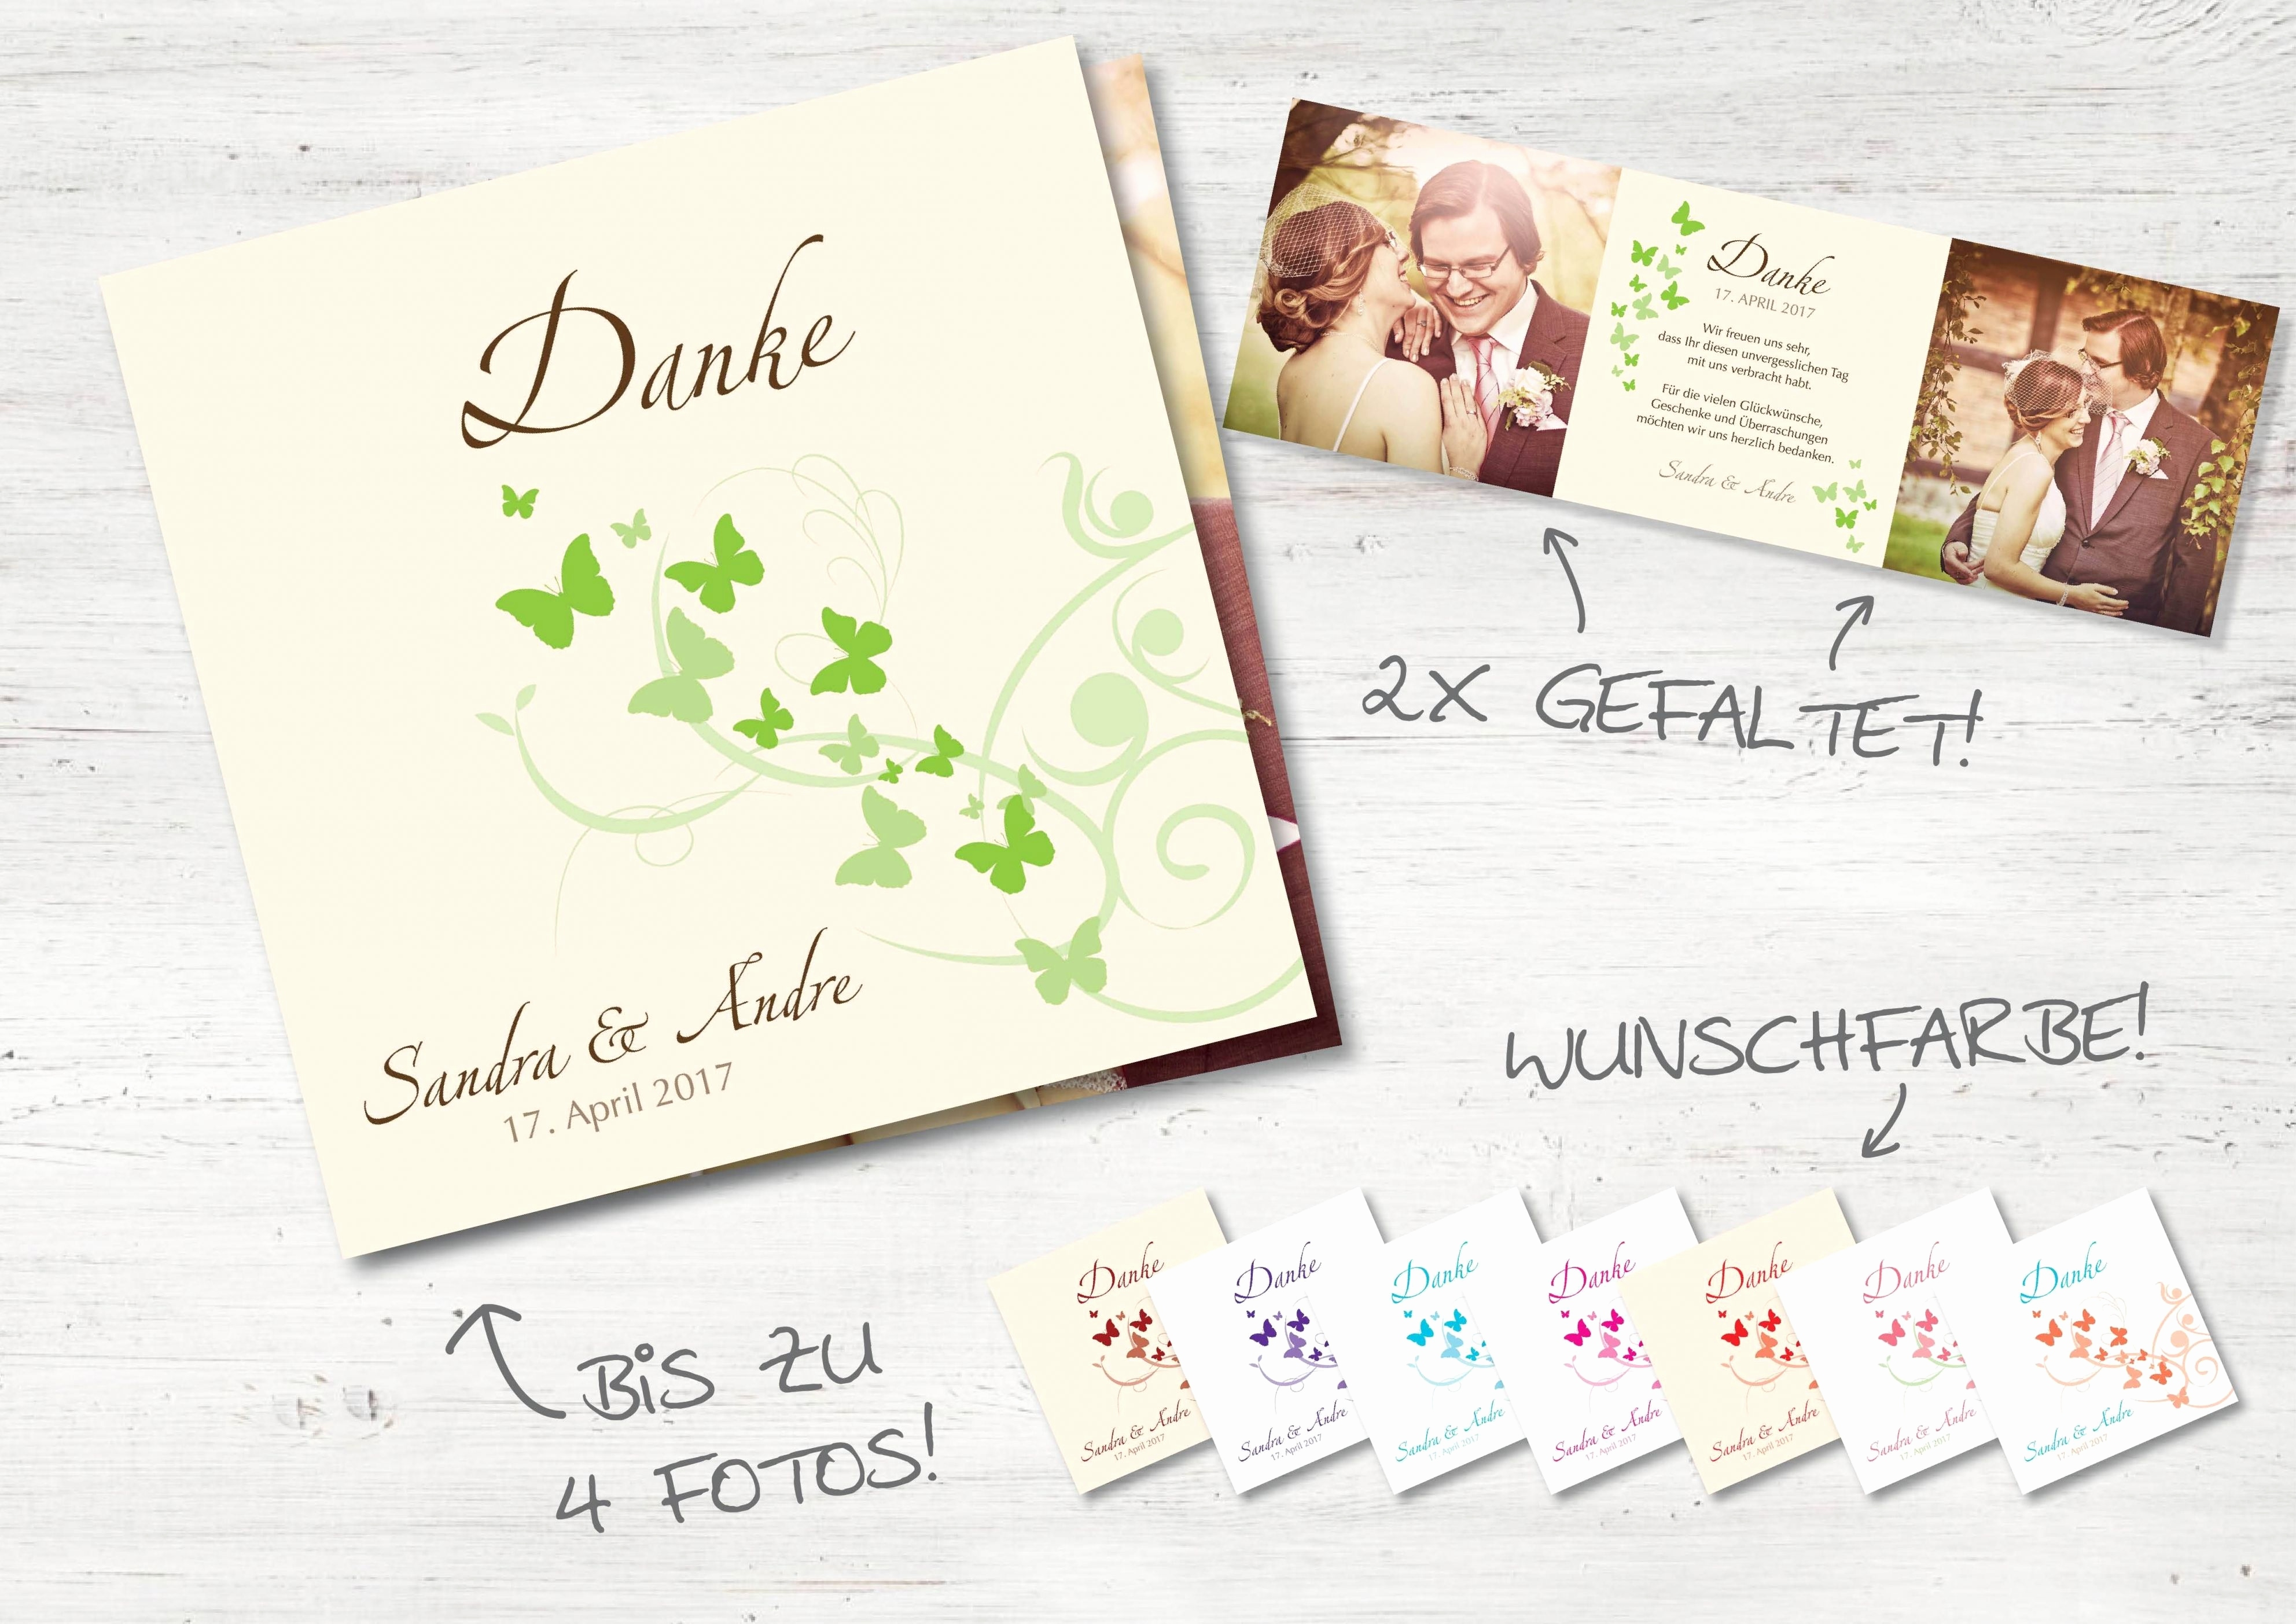 Dankeskarten Hochzeit Elegant Relatively Text Tr84 – Documentaries for Change